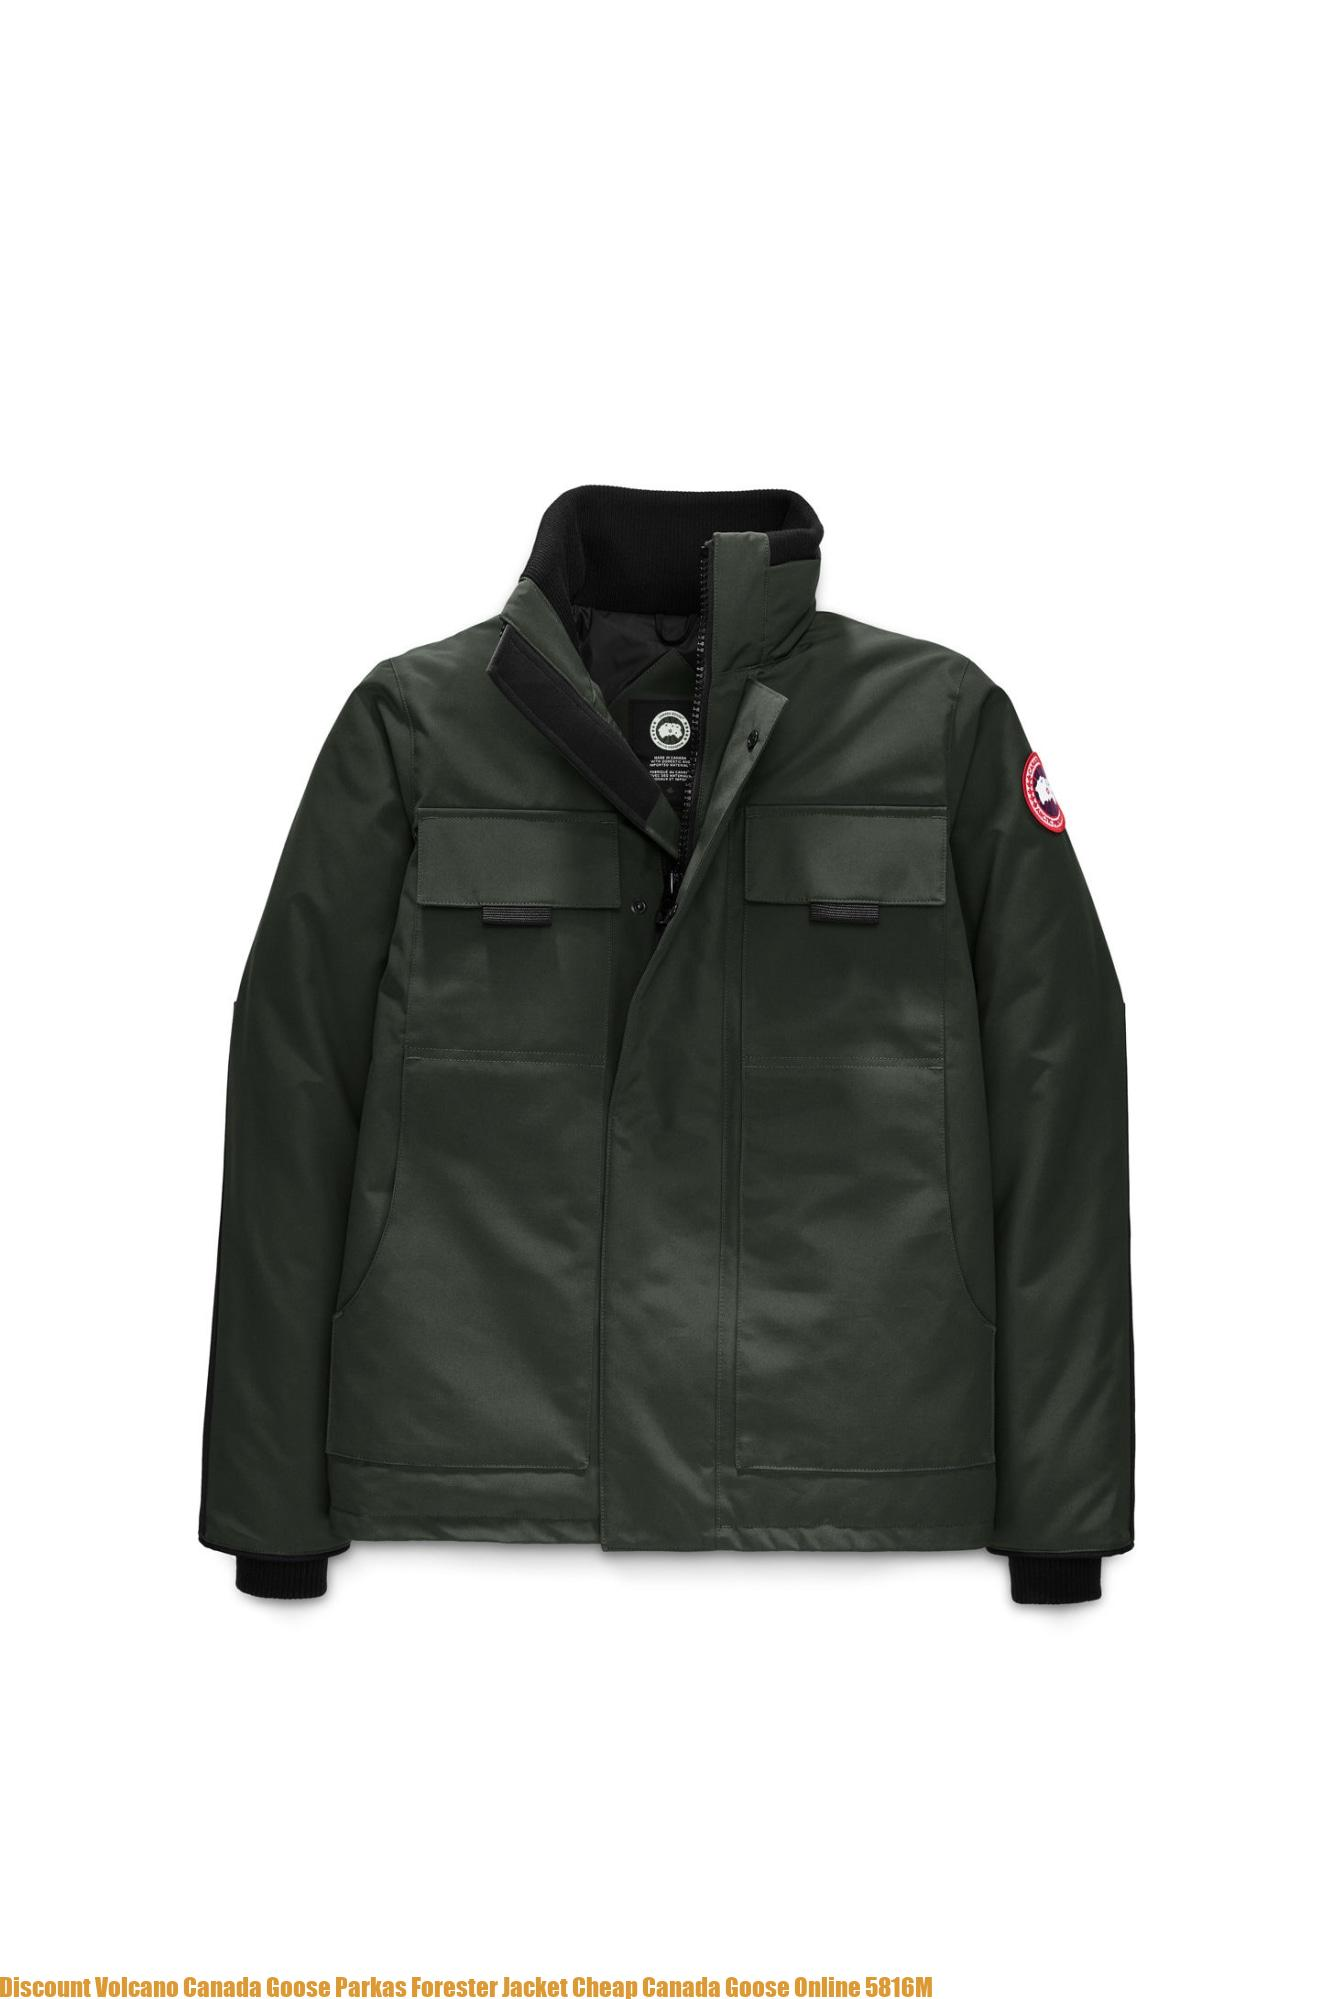 4316bb60cfc Discount Volcano Canada Goose Parkas Forester Jacket Cheap Canada Goose  Online 5816M – Cheap Canada Goose Outlet Down Jackets & Parkas On Sale 75%  Off